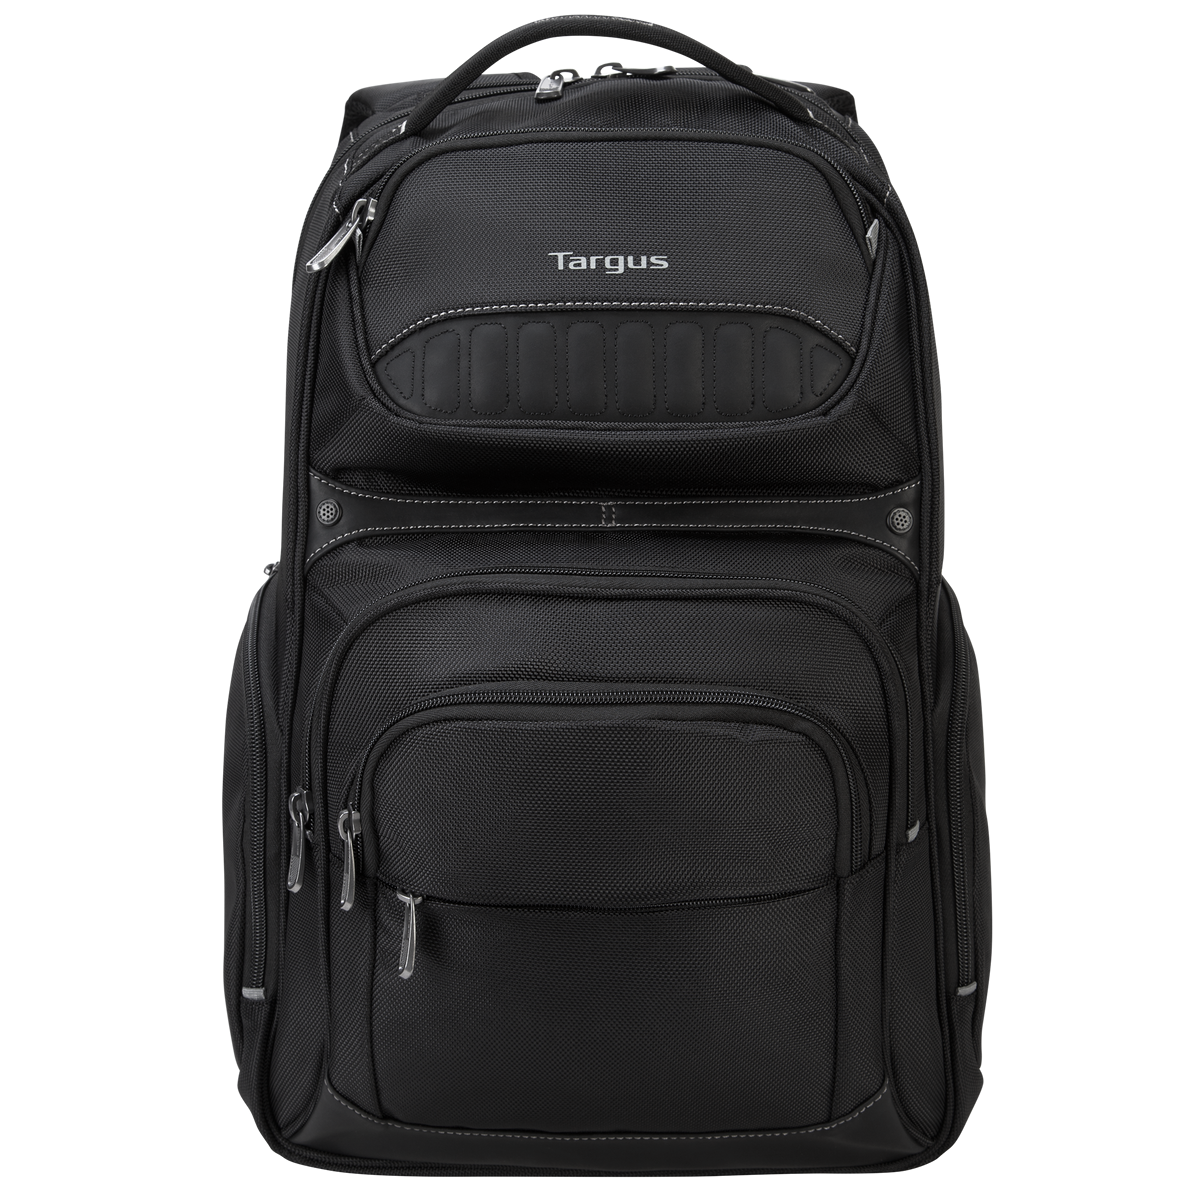 15.6 inch legend iq backpack